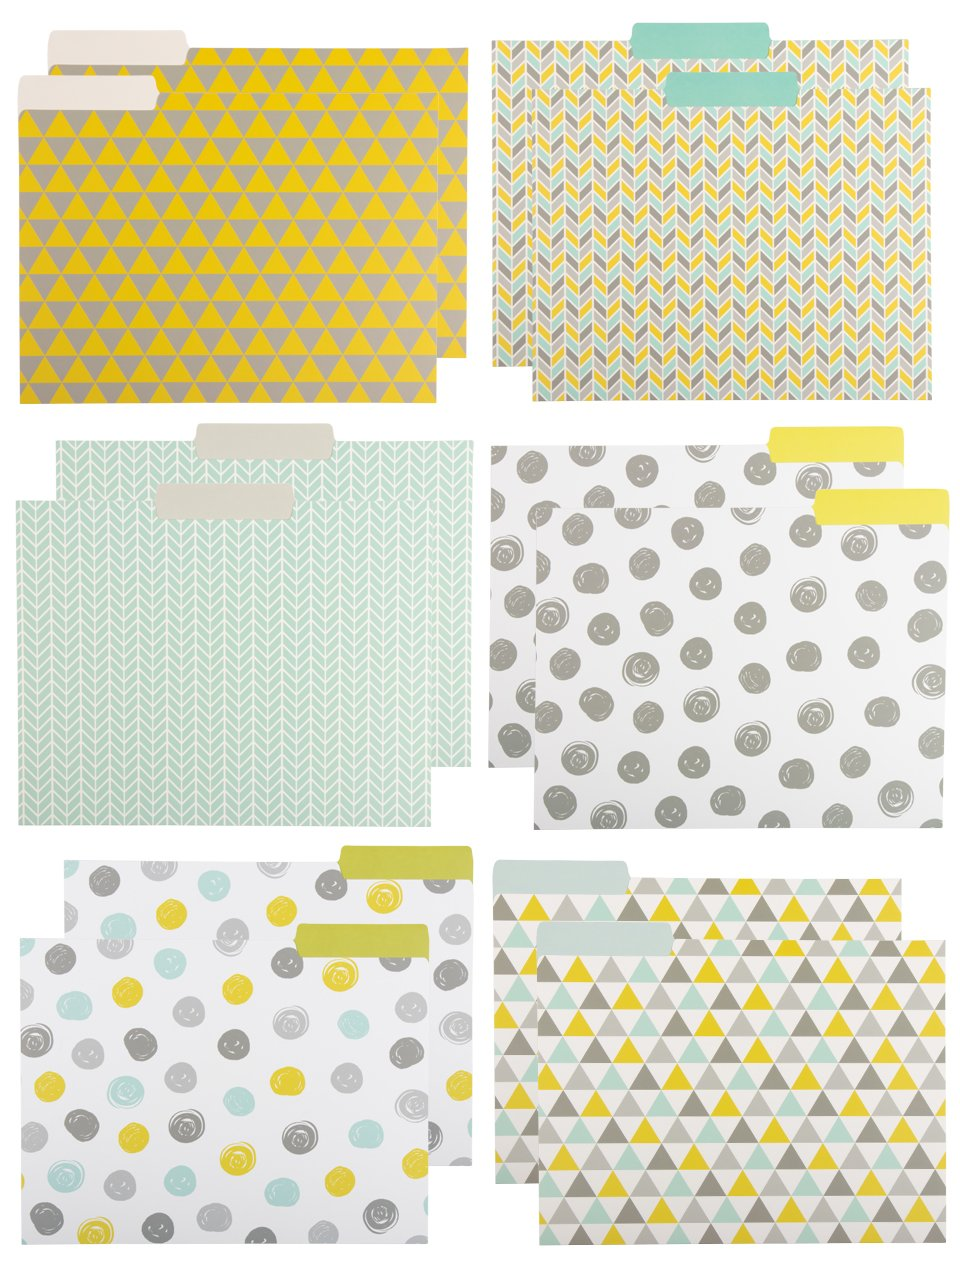 File Folders - 12-Pack Decorative File Folders, 6 Geometric Colorful File Folders, Designer File Folders - Letter Size 1/3 Cut 1/2 inch Top Memory Tab, 11.5 x 9.5 inches by Paper Junkie